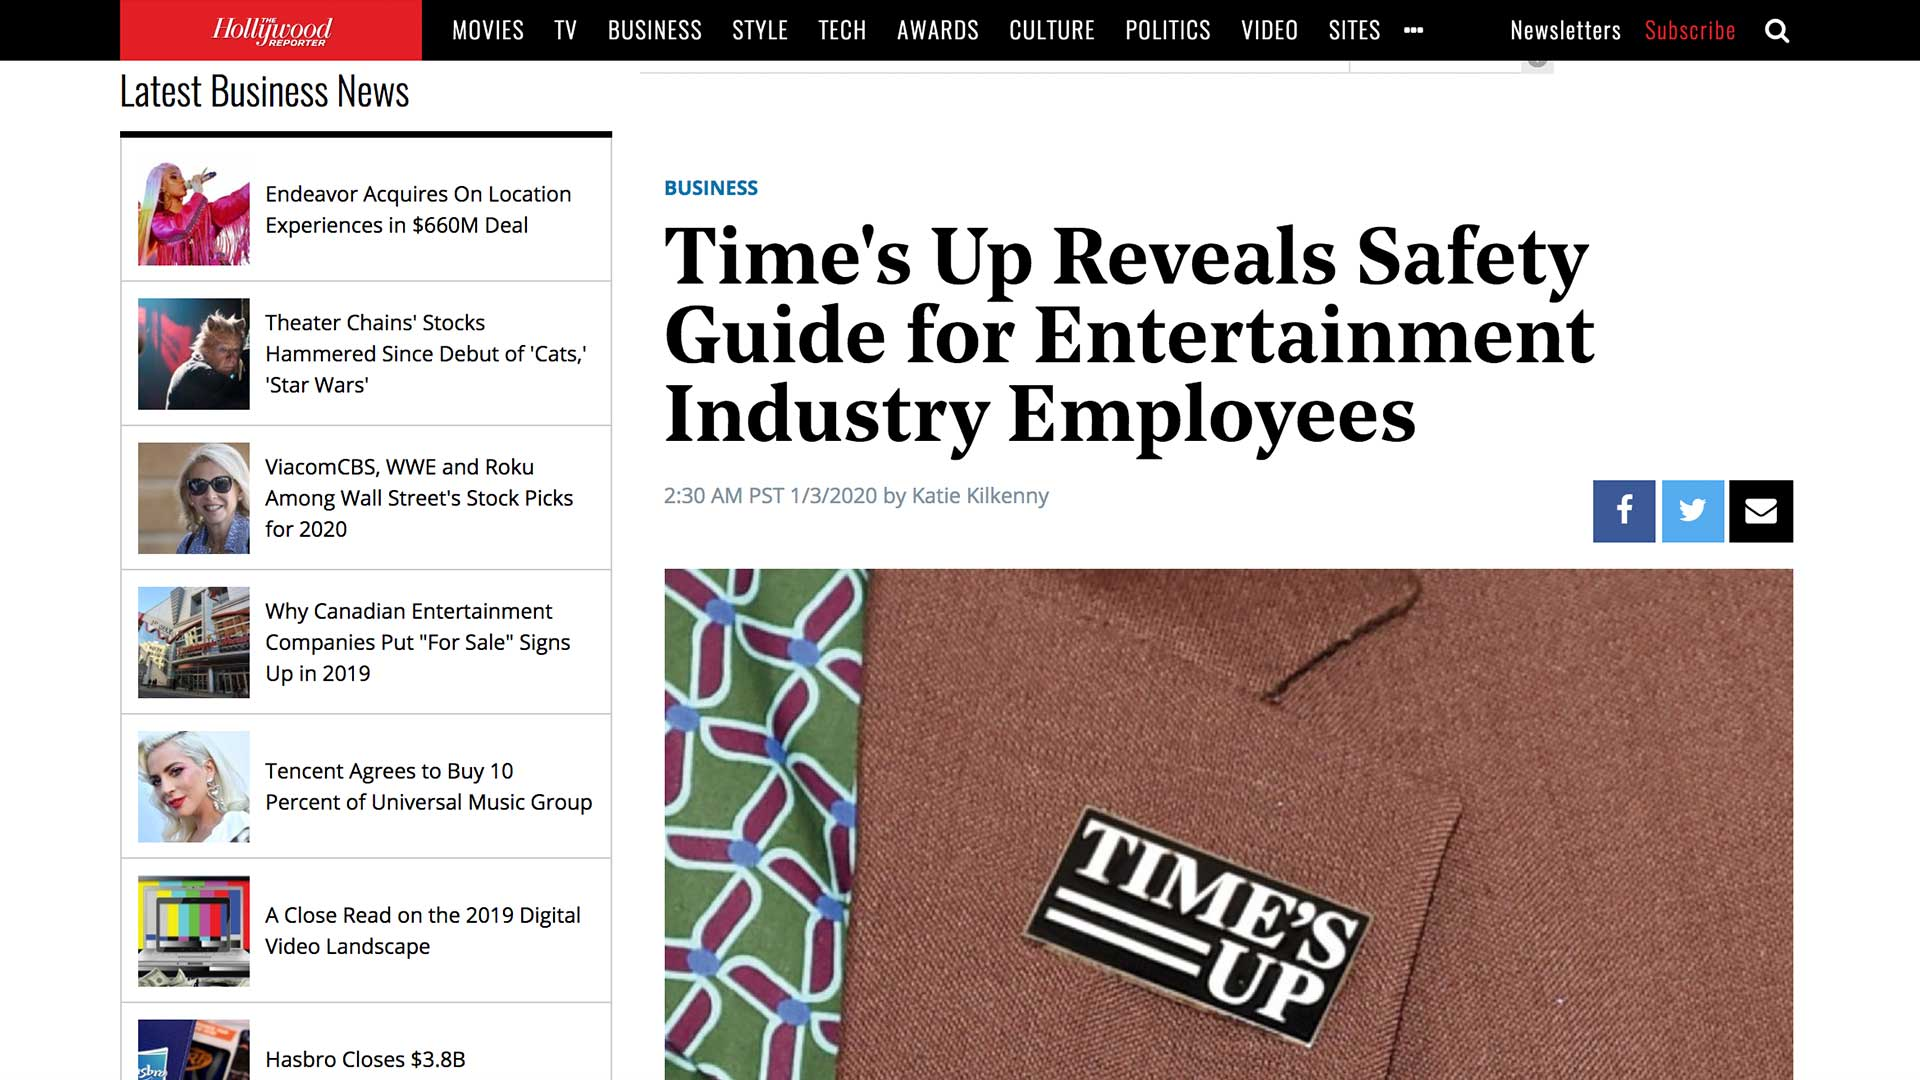 Fairness Rocks News Time's Up Reveals Safety Guide for Entertainment Industry Employees